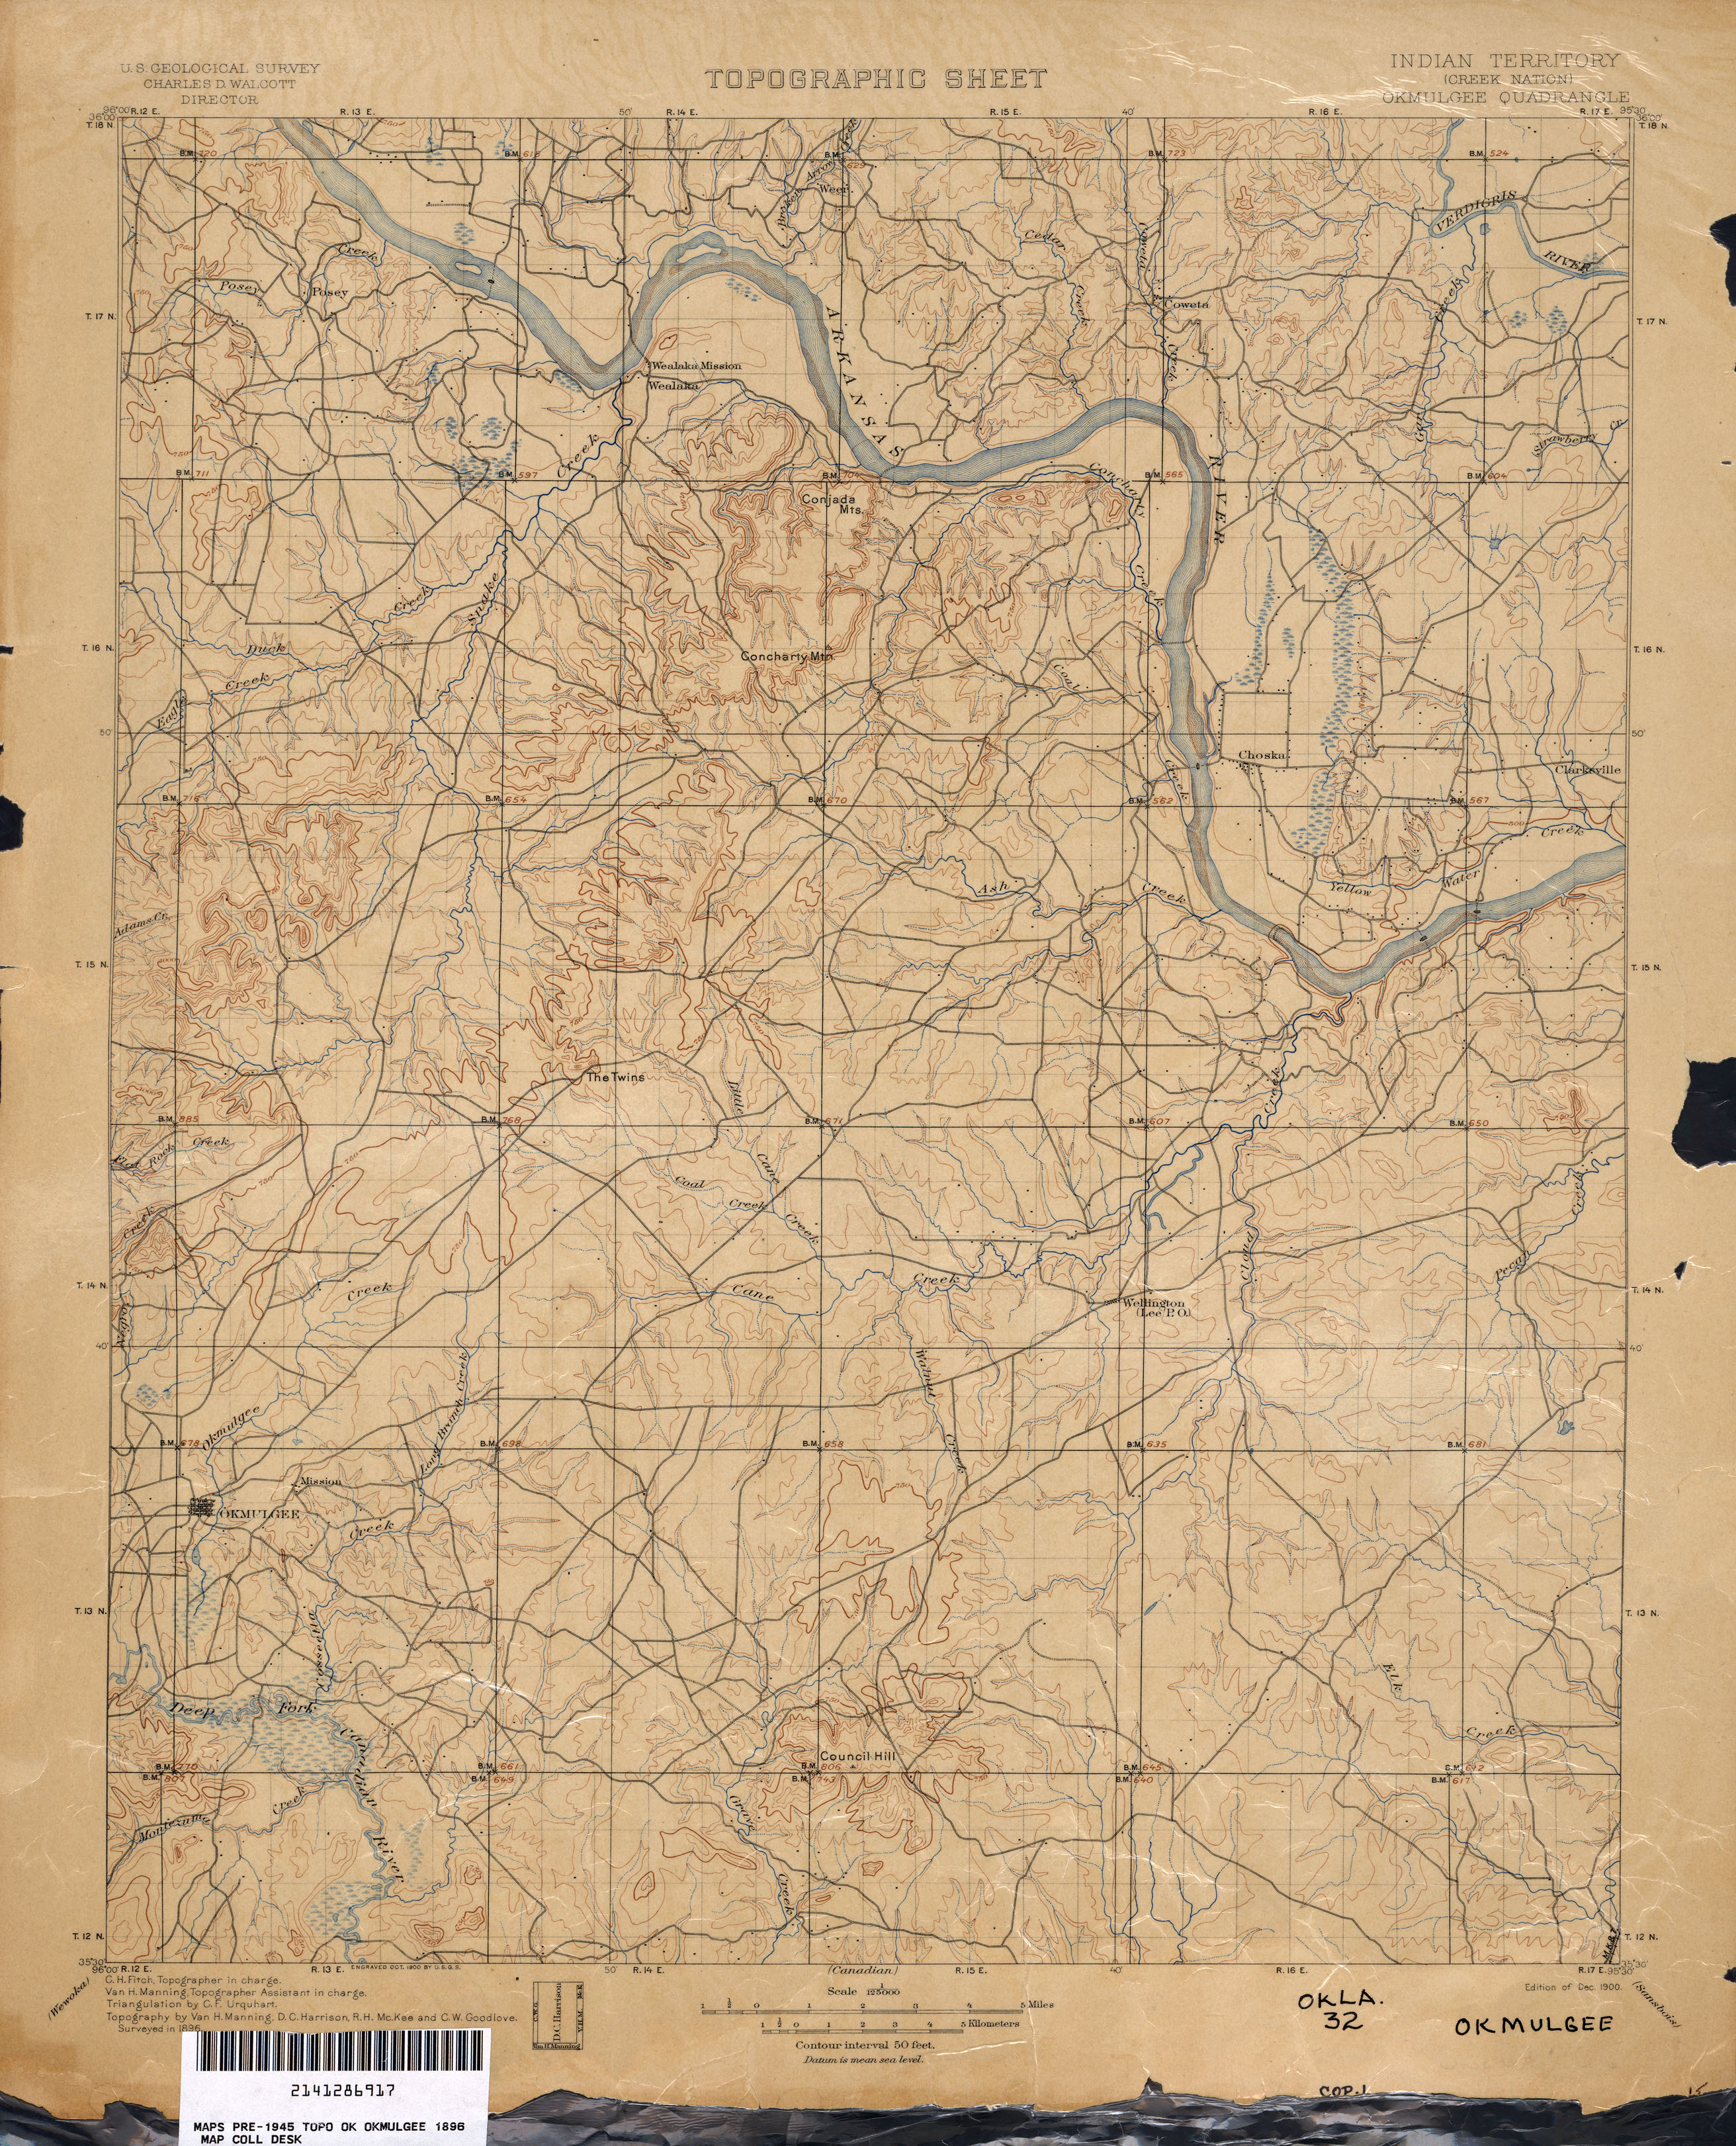 Oklahoma Historical Topographic Maps - Perry-Castañeda Map ... on